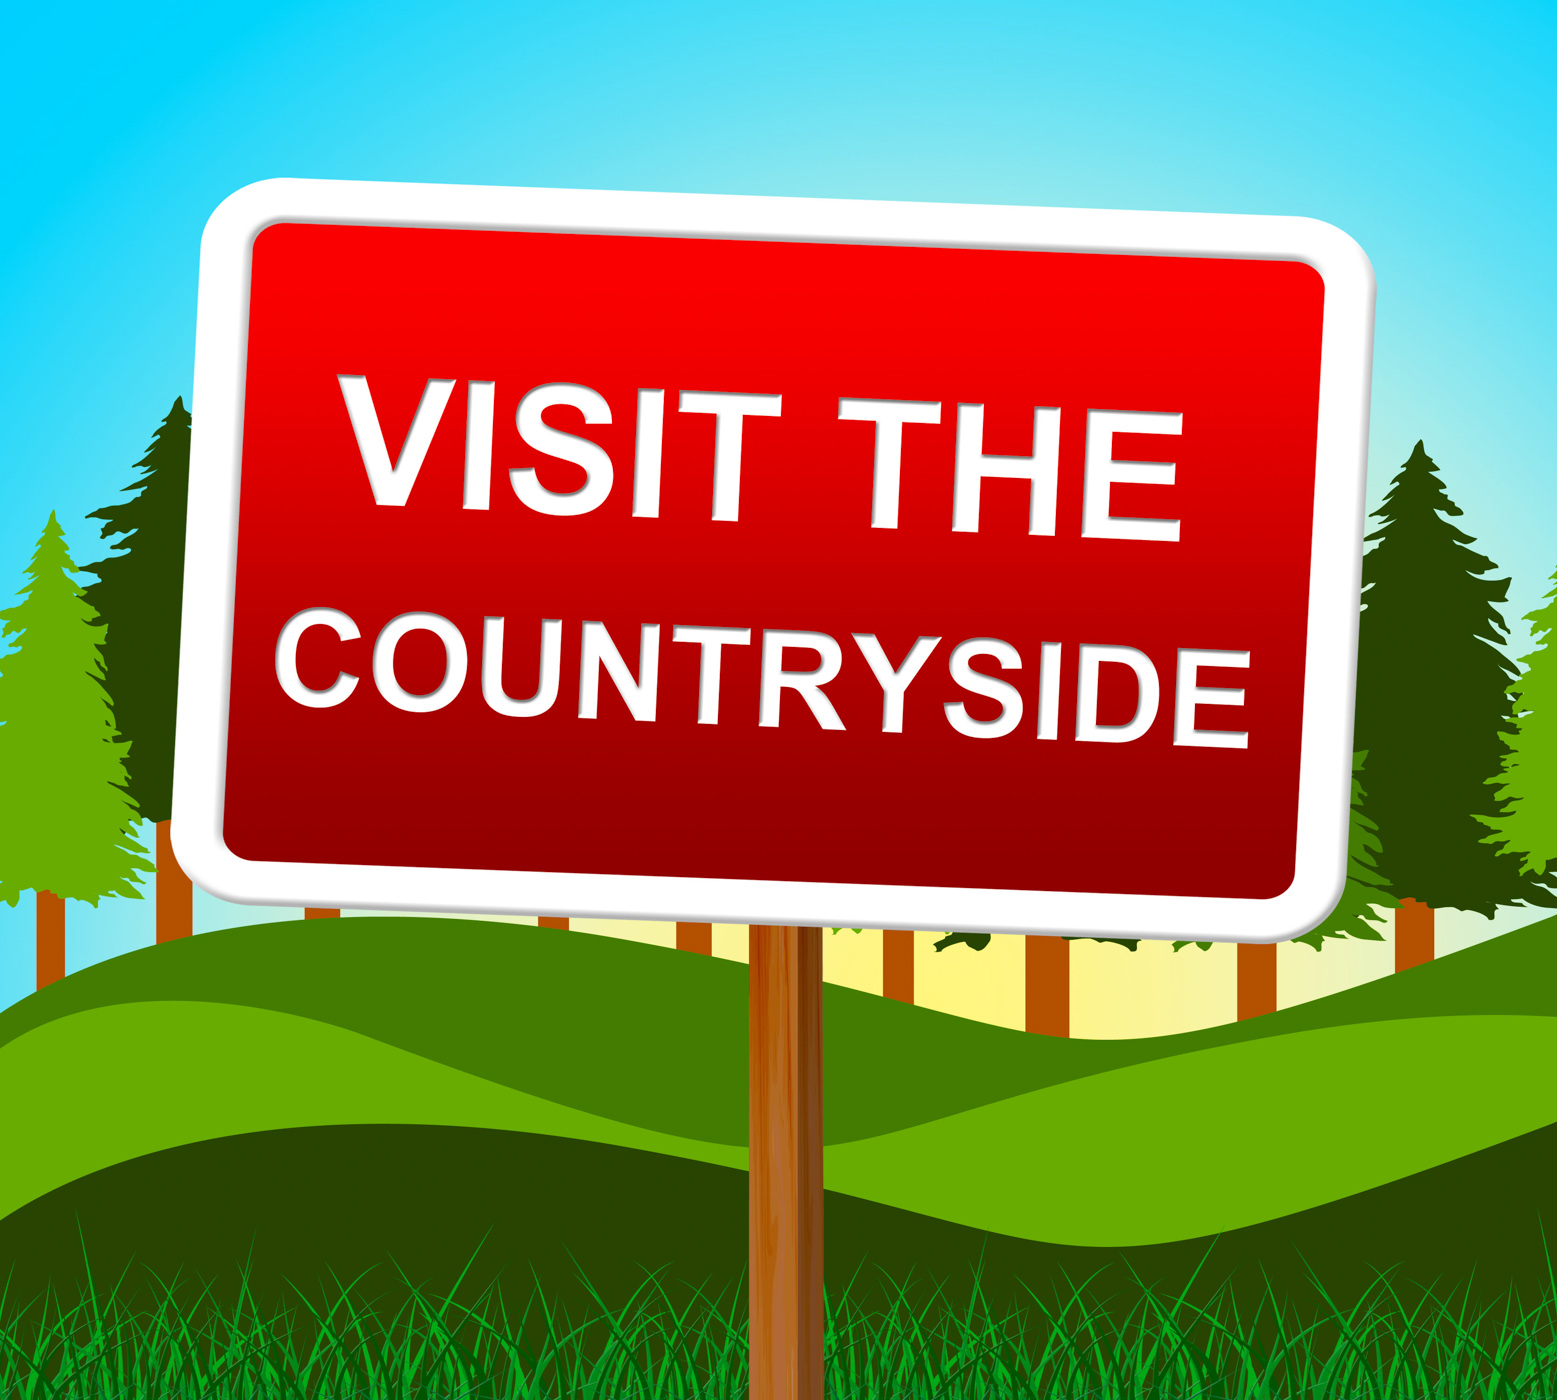 Visit the countryside means message nature and signboard photo